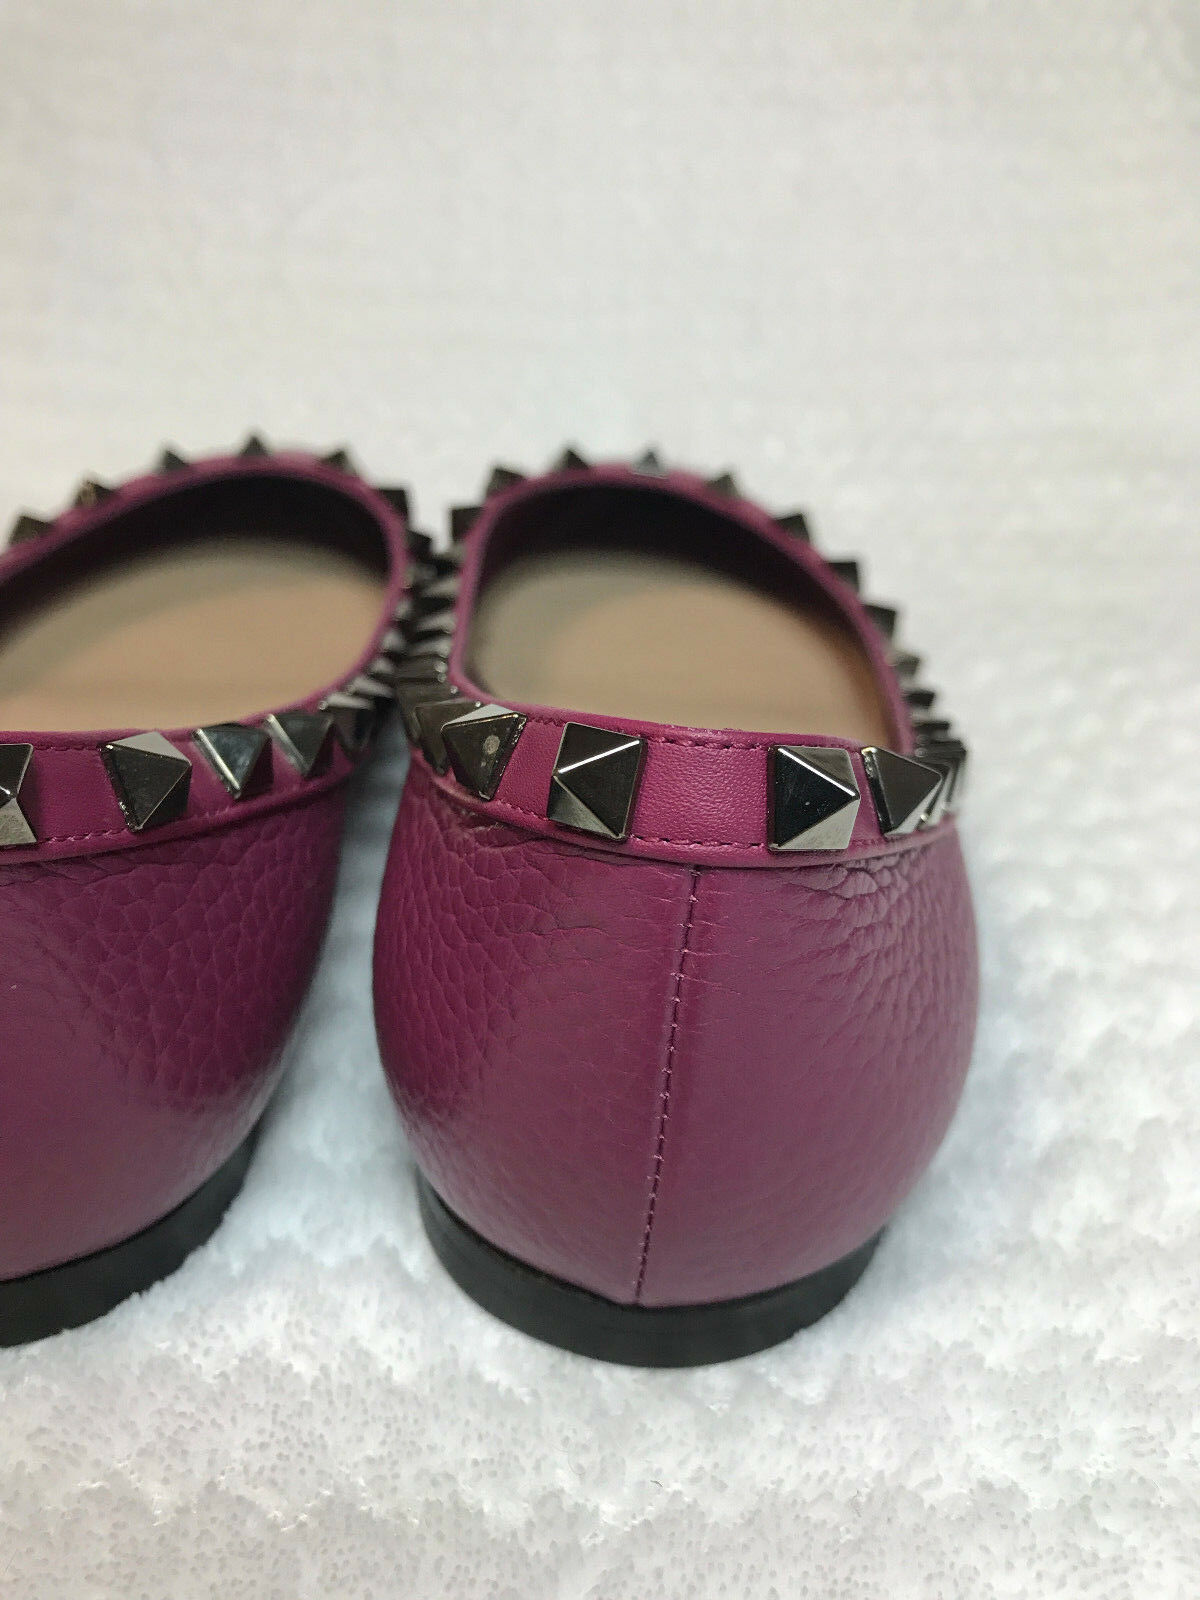 Valentino Rockstud Rolling leather flat ballerinas magenta /cranberry flat leather shoes 6/36 aa0802